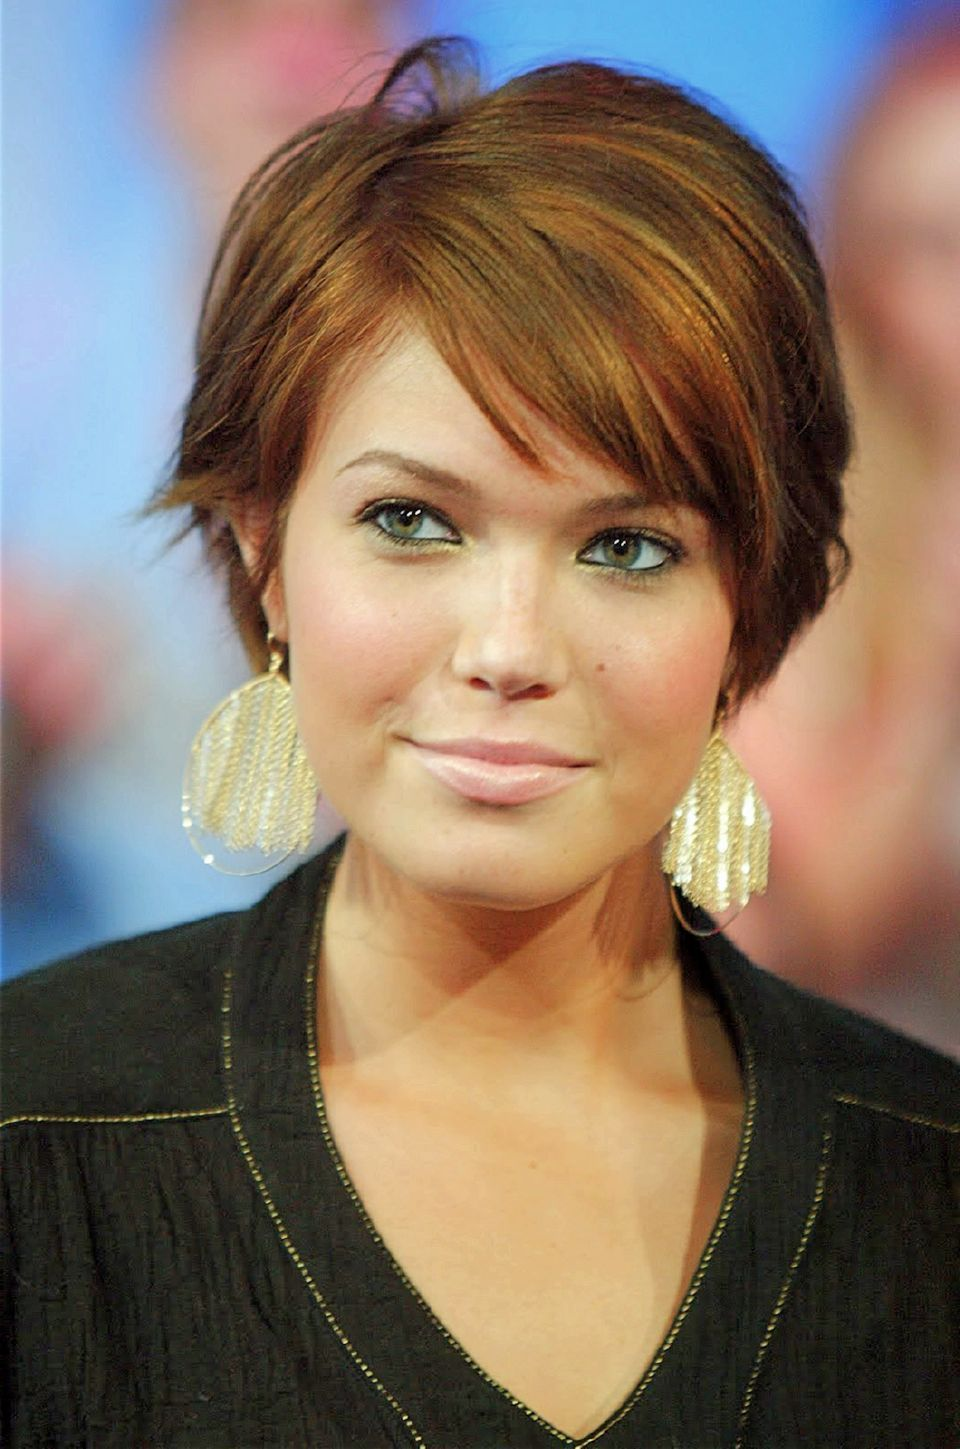 Easy hairstyles for round face shapes - 20 Short Hairstyle Ideas For Round Faces Chic Haircuts You Have To Try